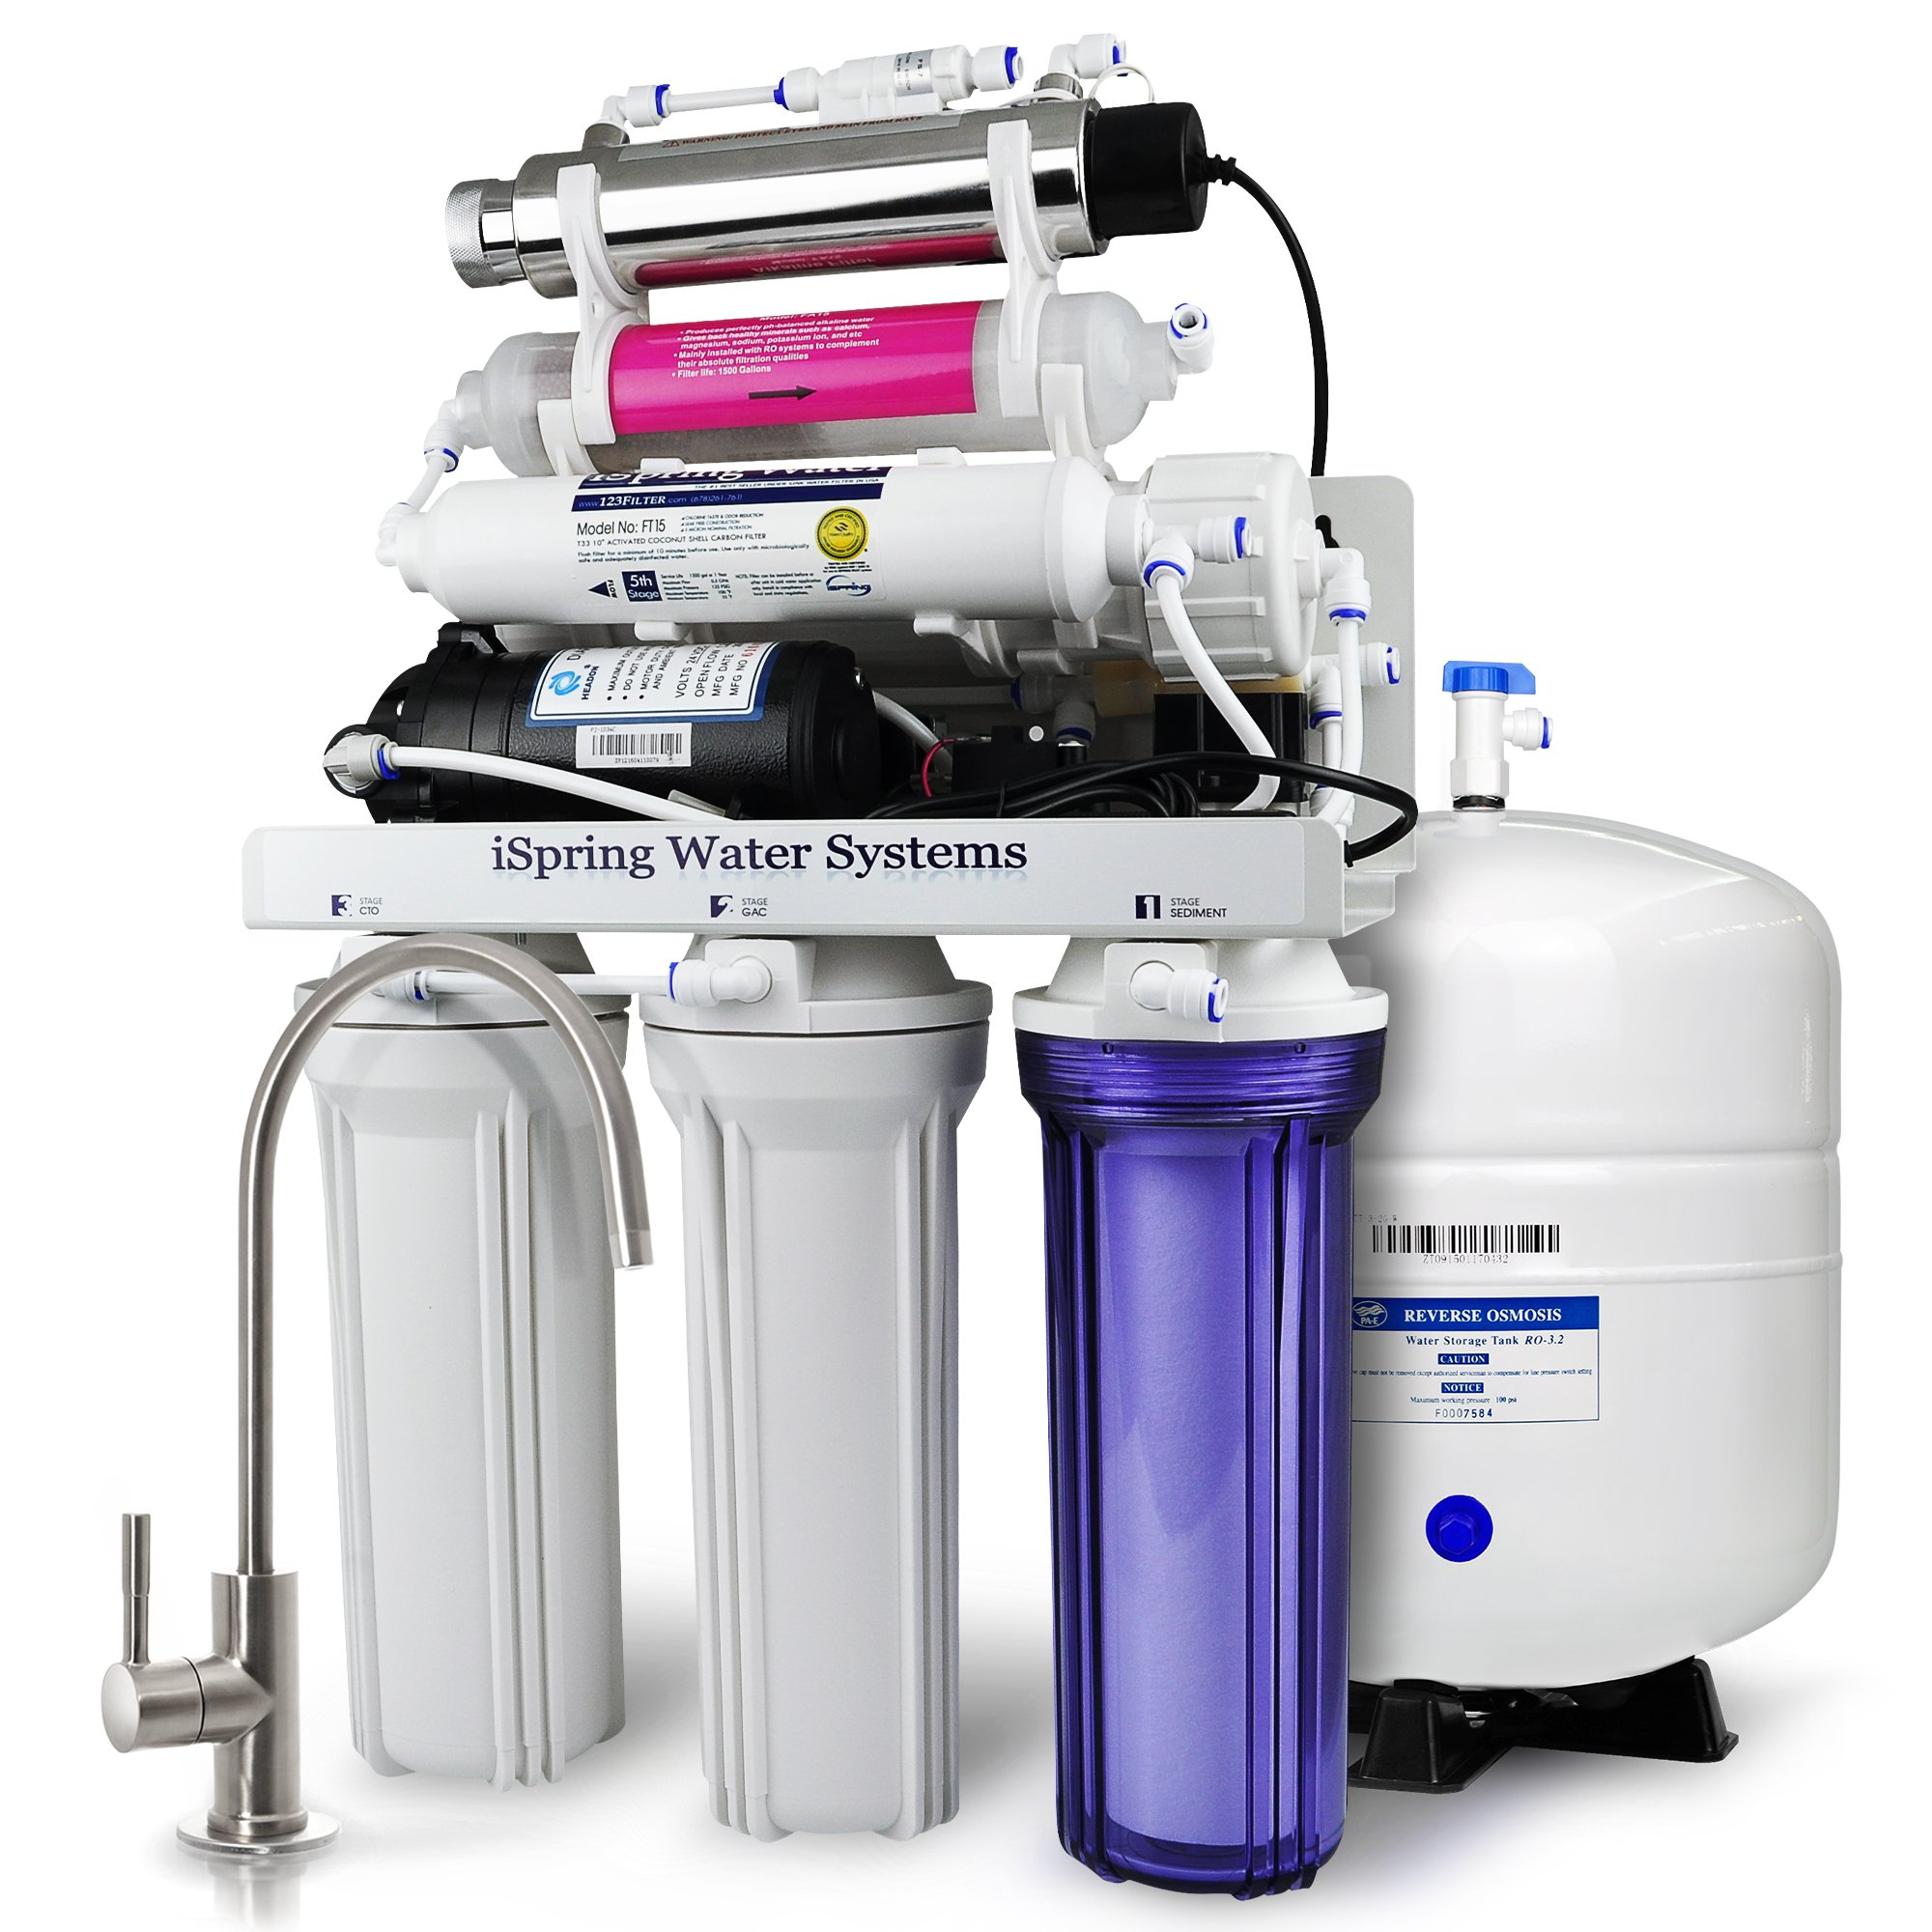 iSpring RCC1UP-AK 7-Stage Maximum Performance 100 GPD Under-Sink Reverse Osmosis Drinking Water Filtration System with Booster Pump, Alkaline pH+ Remineralization Filter and UV Sterilizer